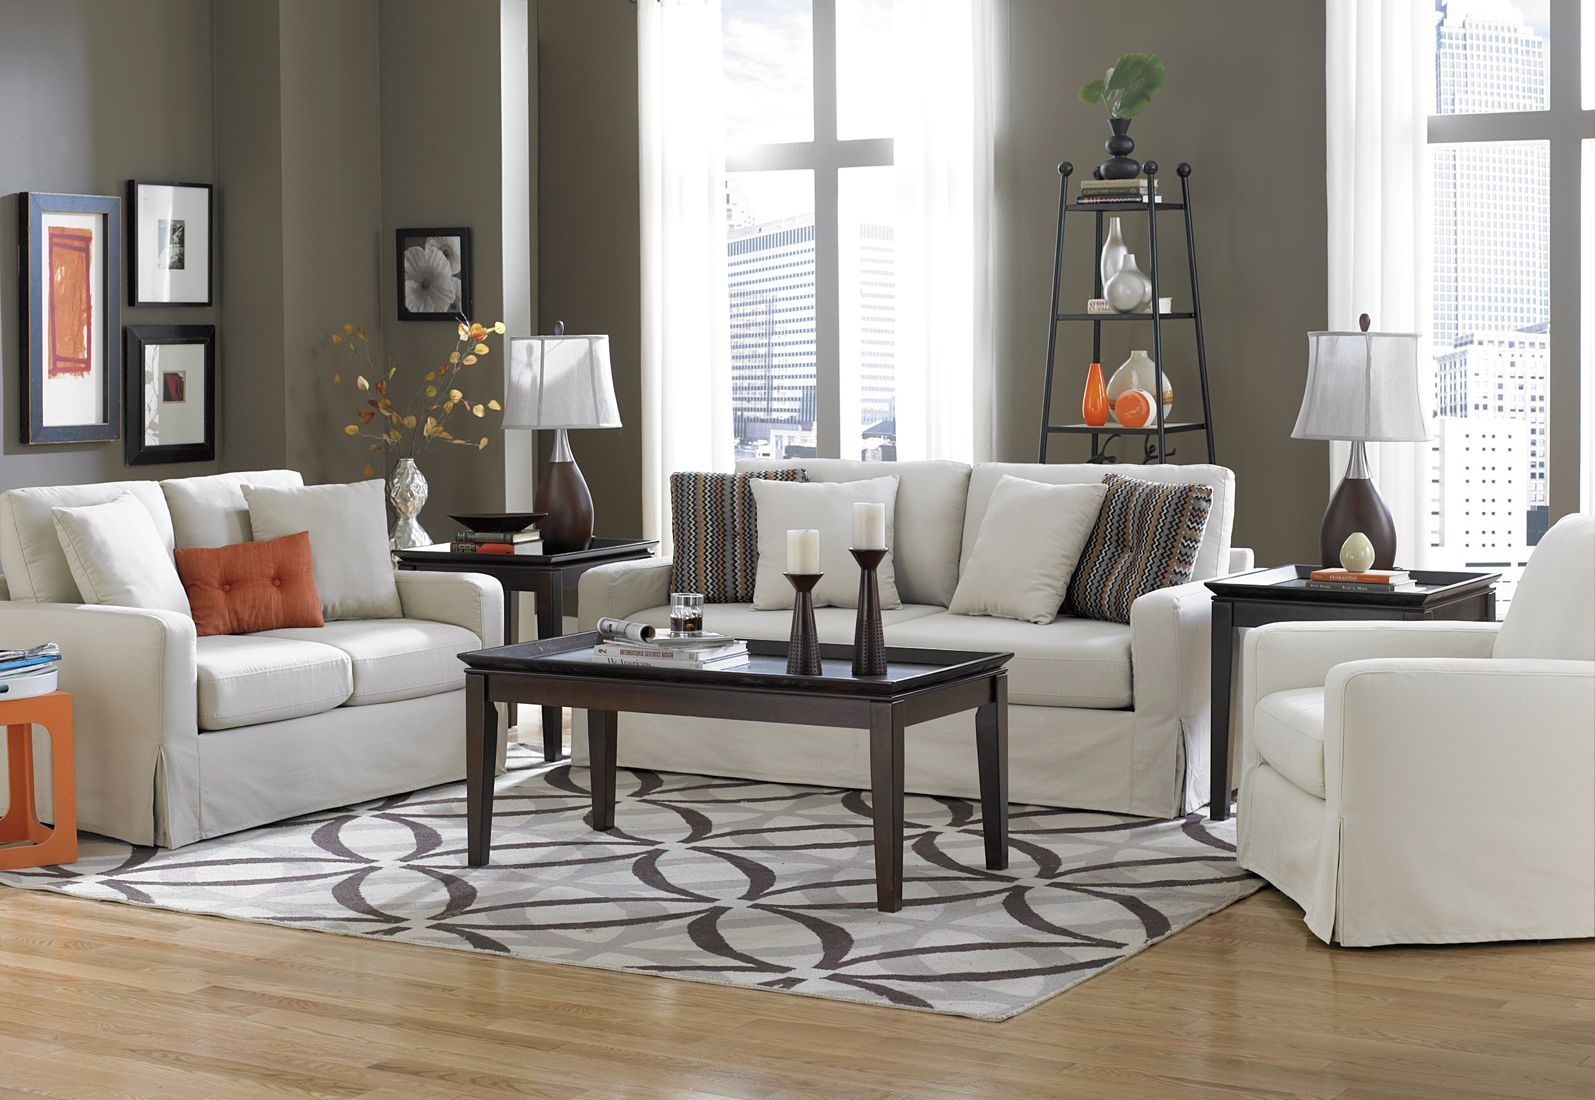 modern living room rug - interior | home interior & decorating